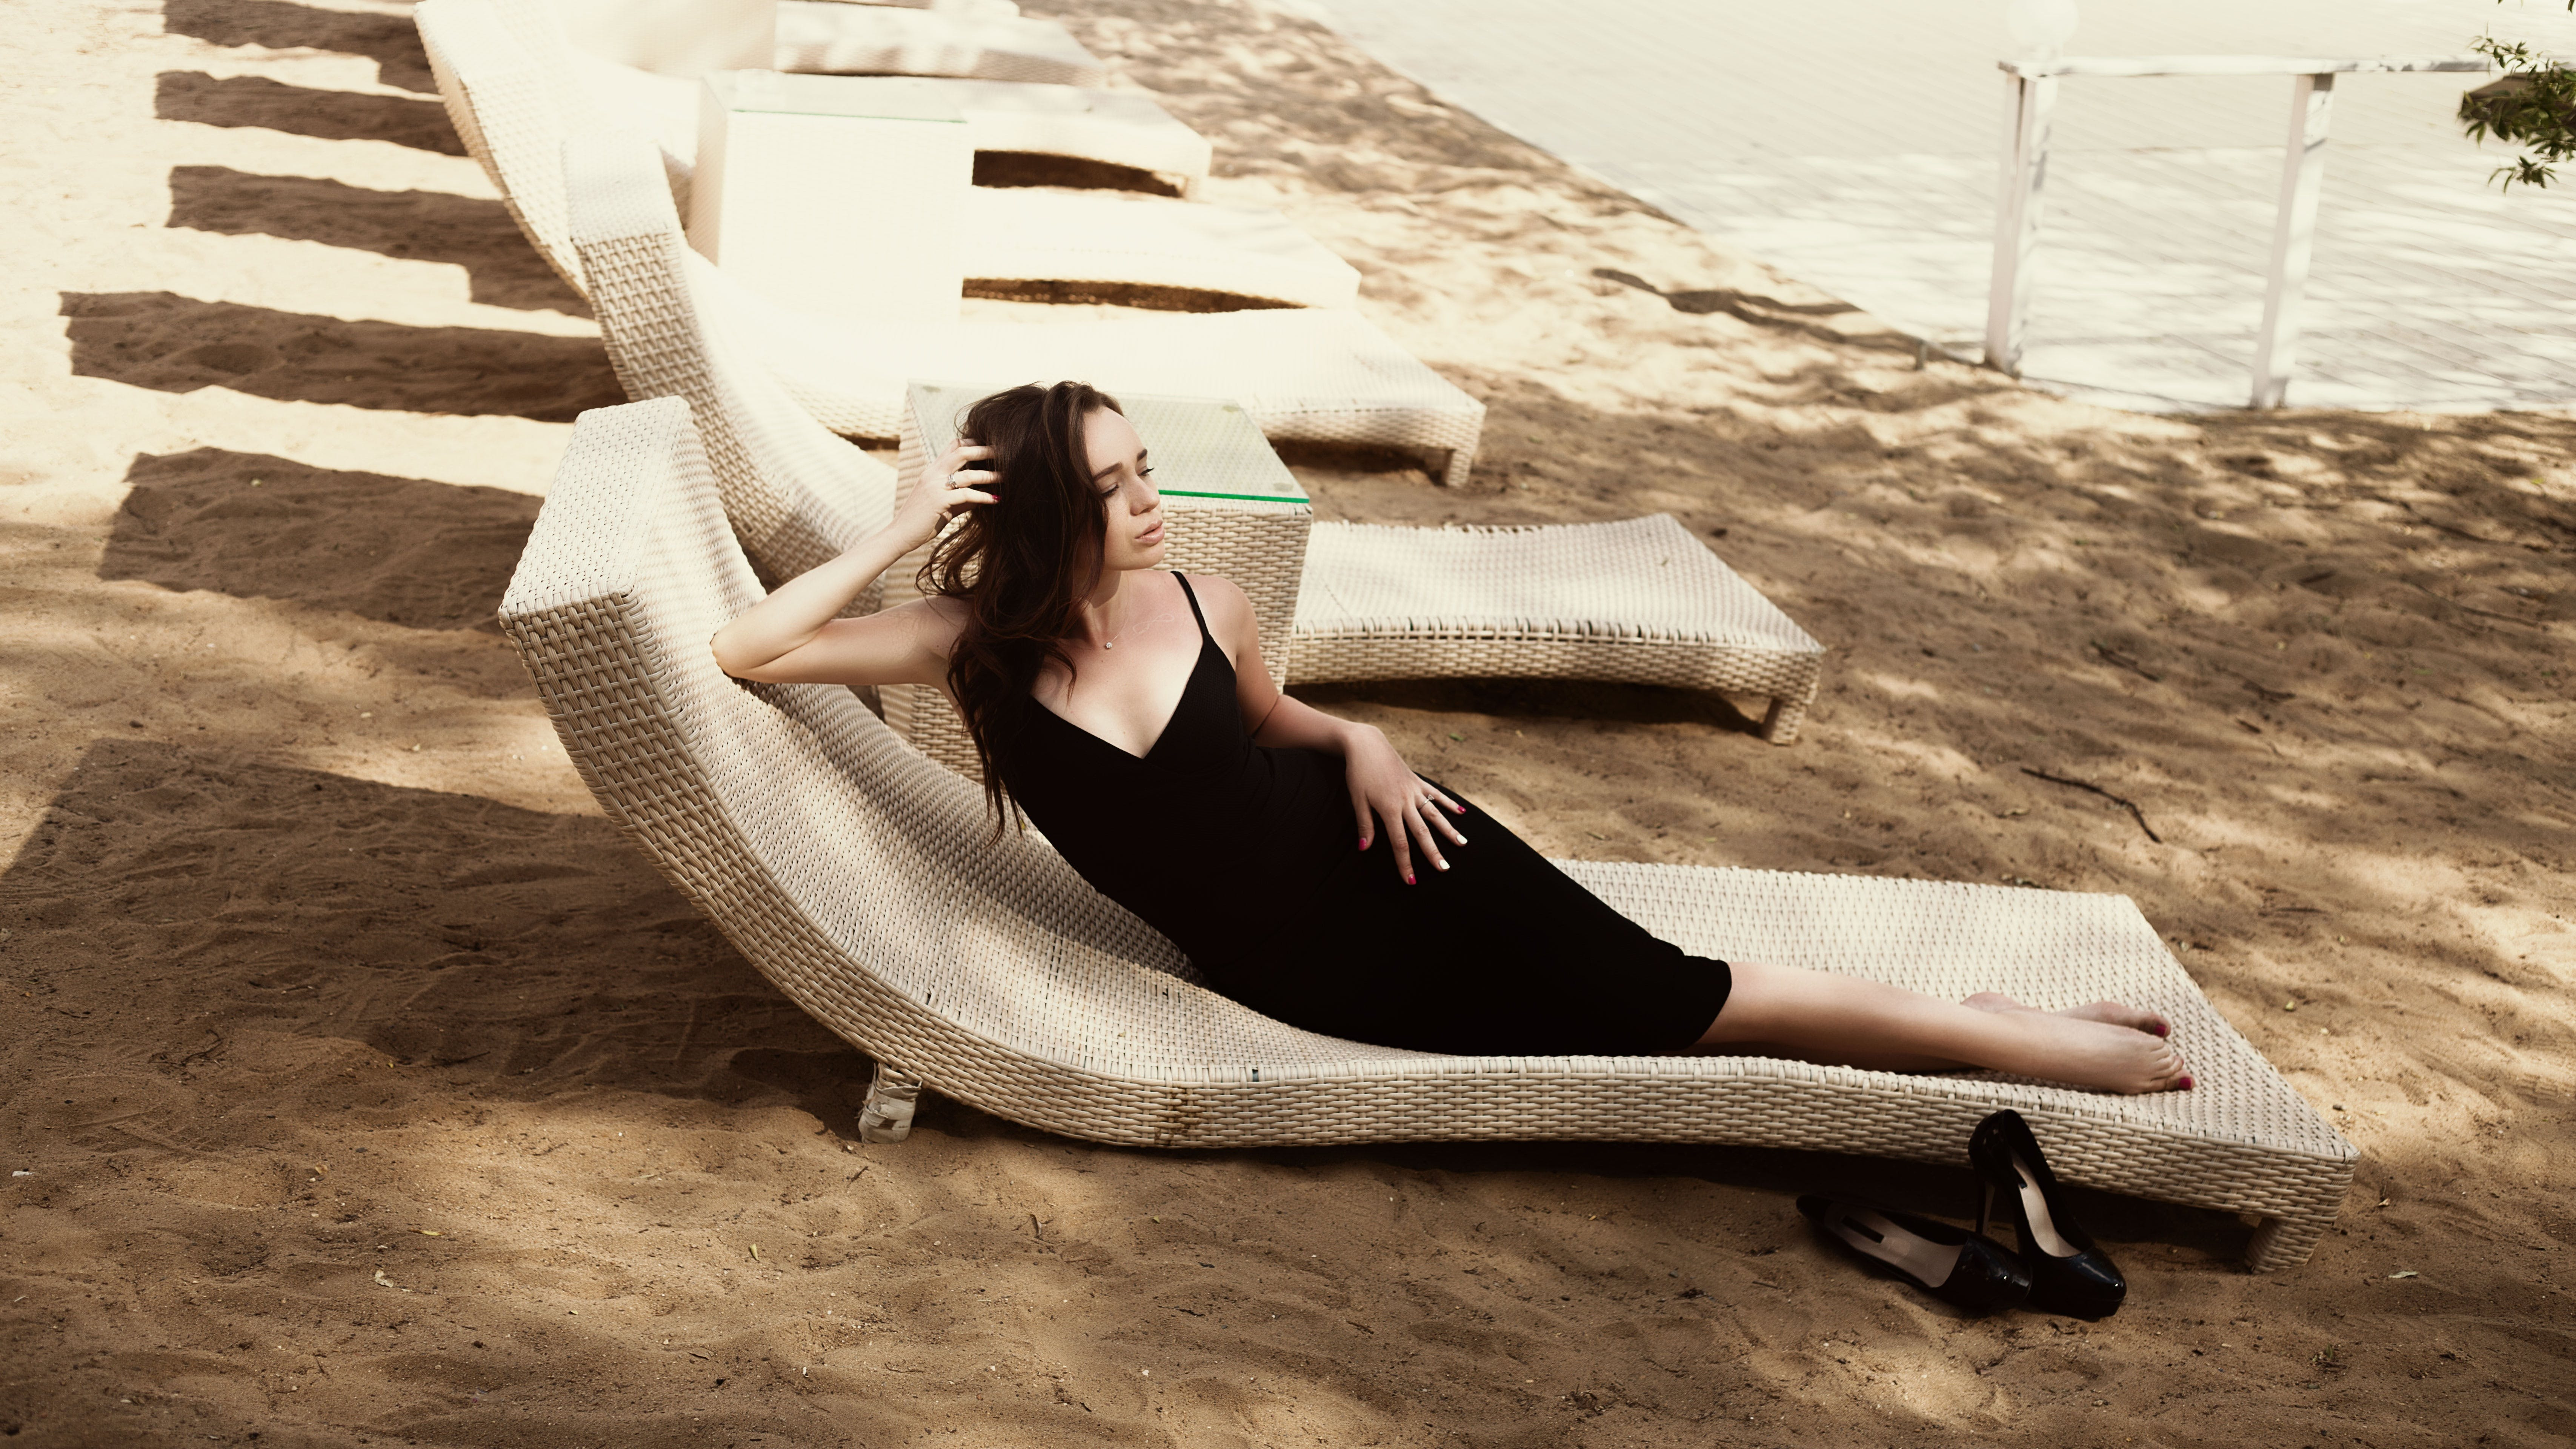 Woman Laying on Beige Lounger